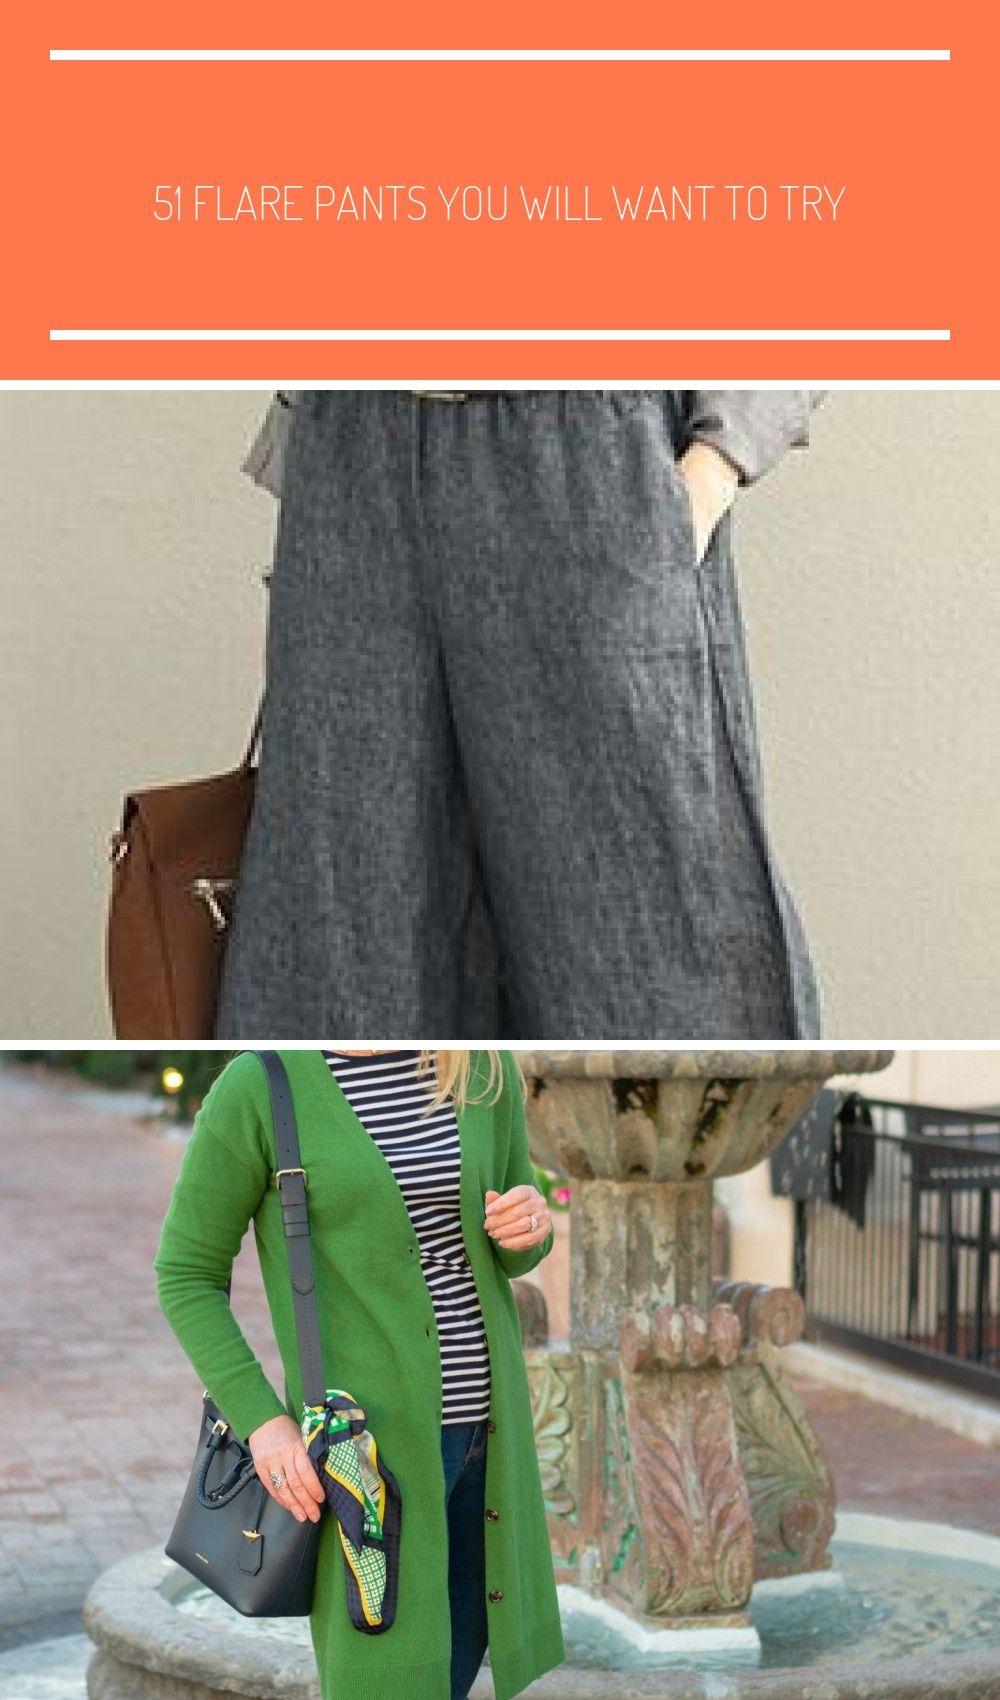 51 Flare Pants You Will Want To Try casual spring outfits for women over 40 over 50 style 51 Flare Pants You Will Want To Try  Fashion New Trends